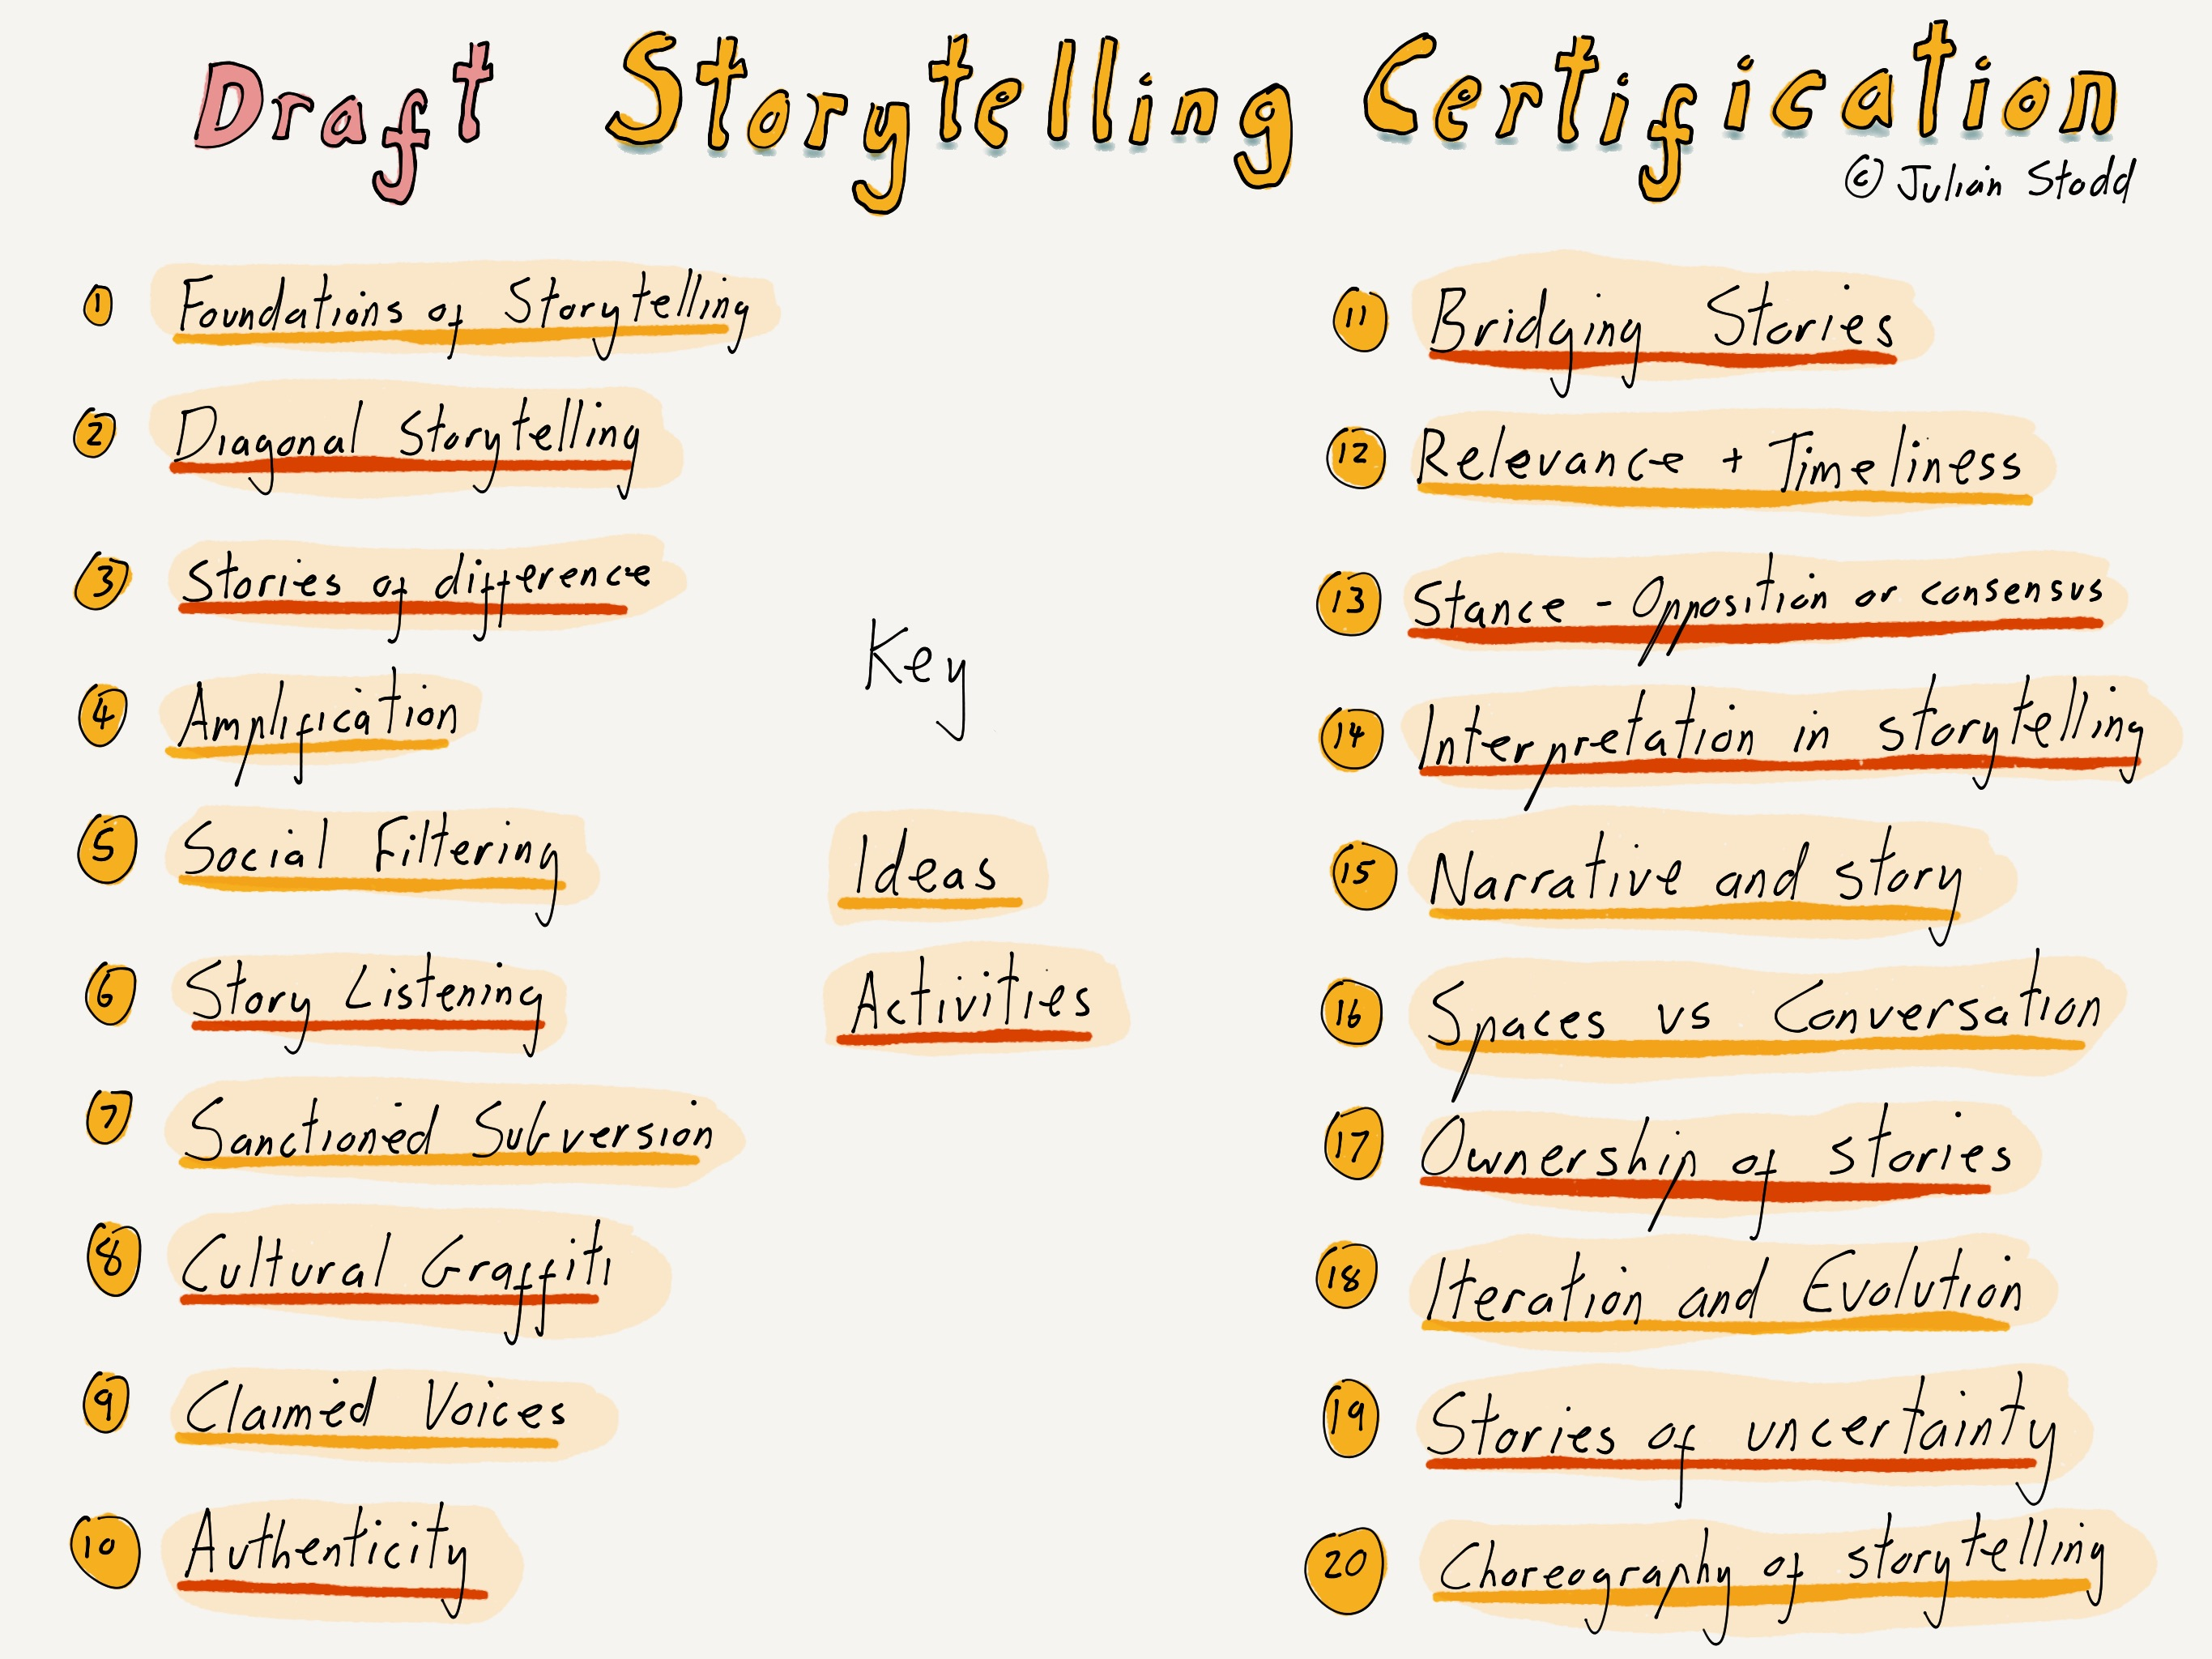 Workingoutloud On Social Leadership Storytelling Certification